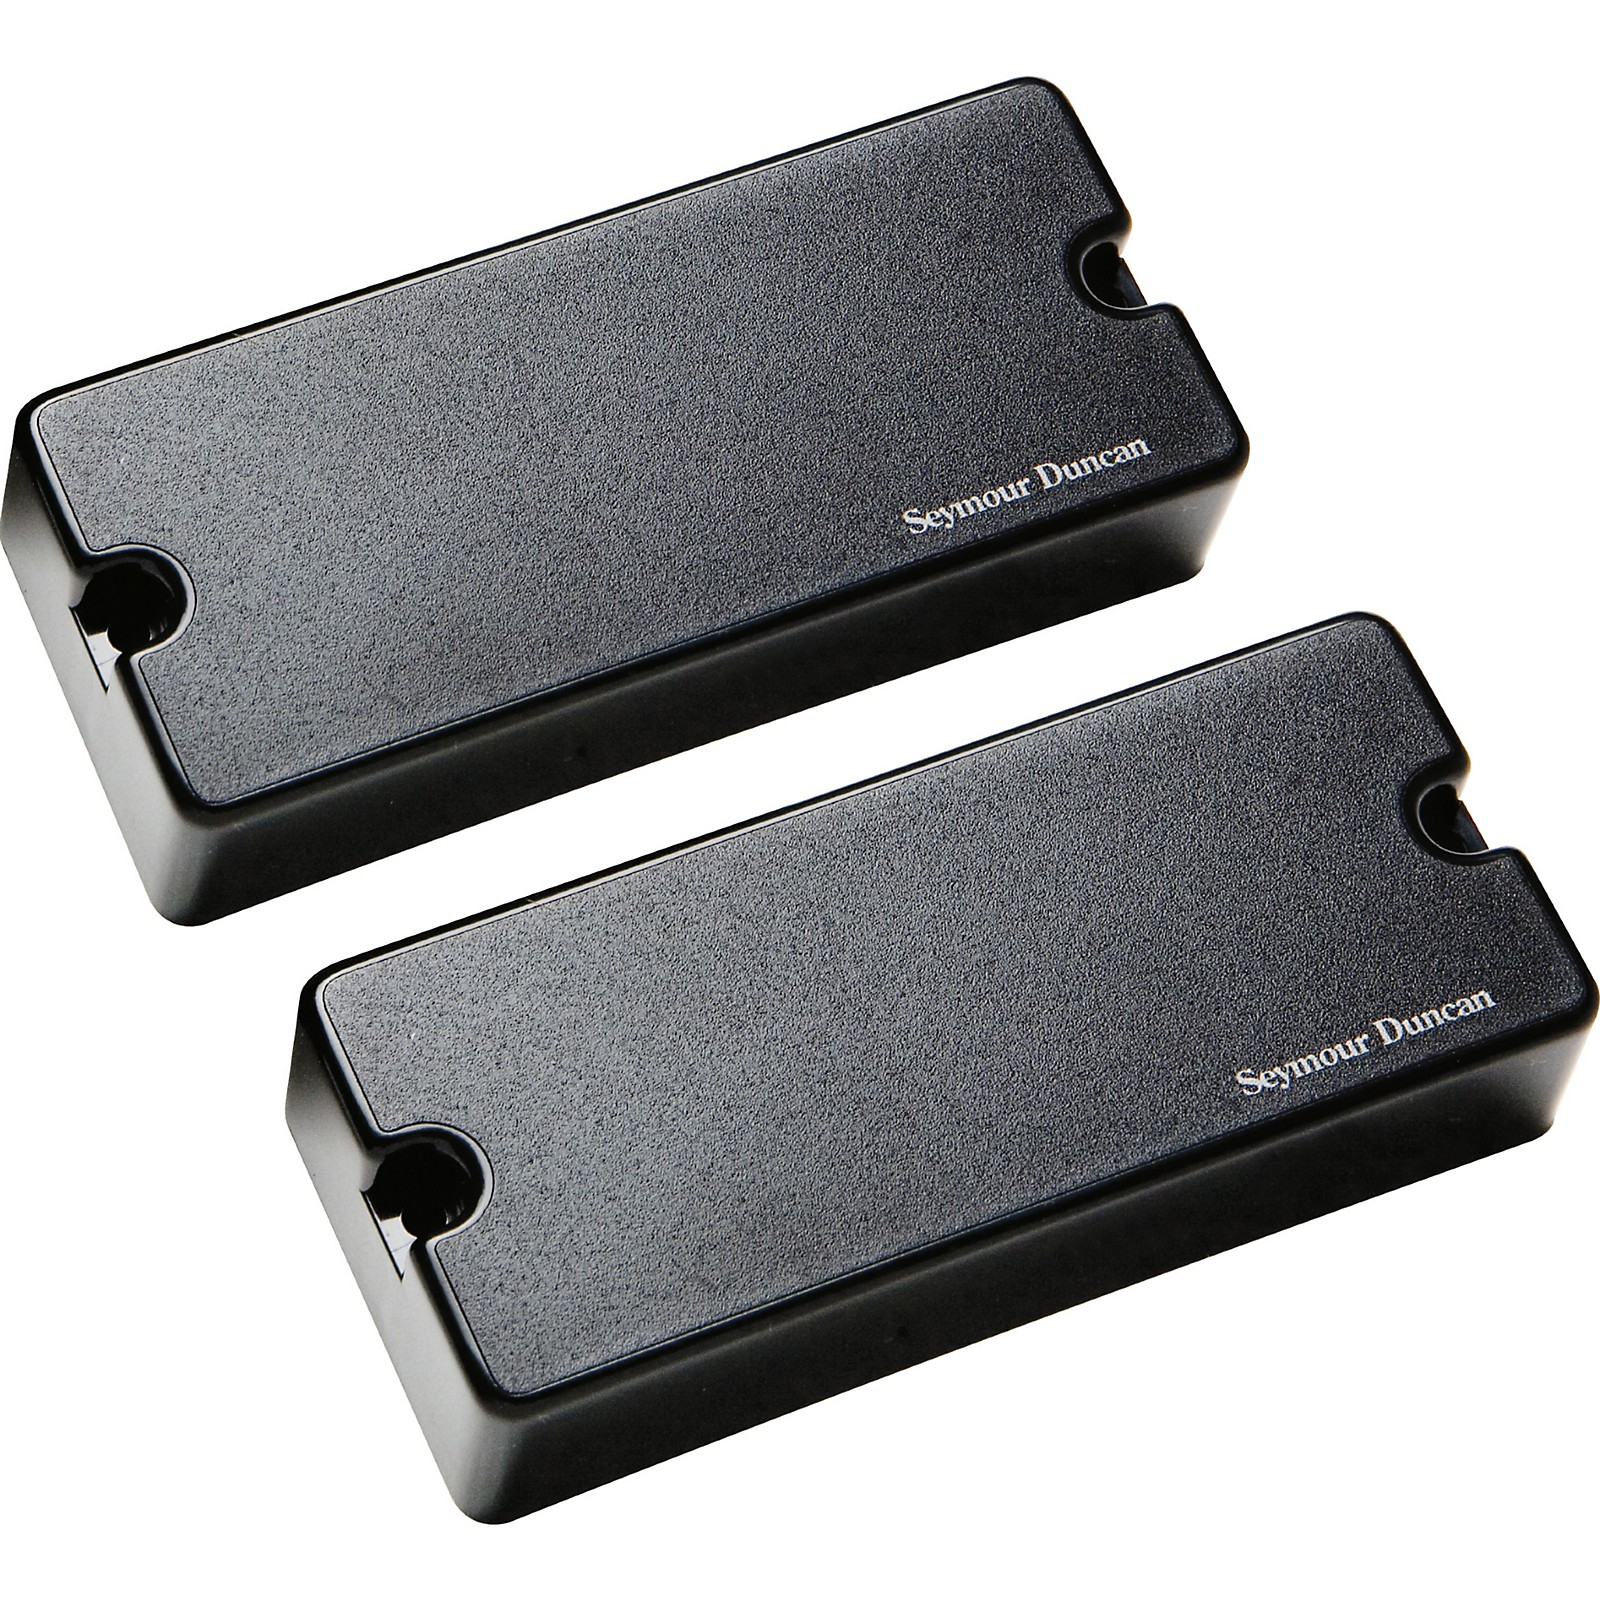 Open Box Seymour Duncan Blackouts AHB-1s 7-String Phase II Active Humbucker neck & bridge set